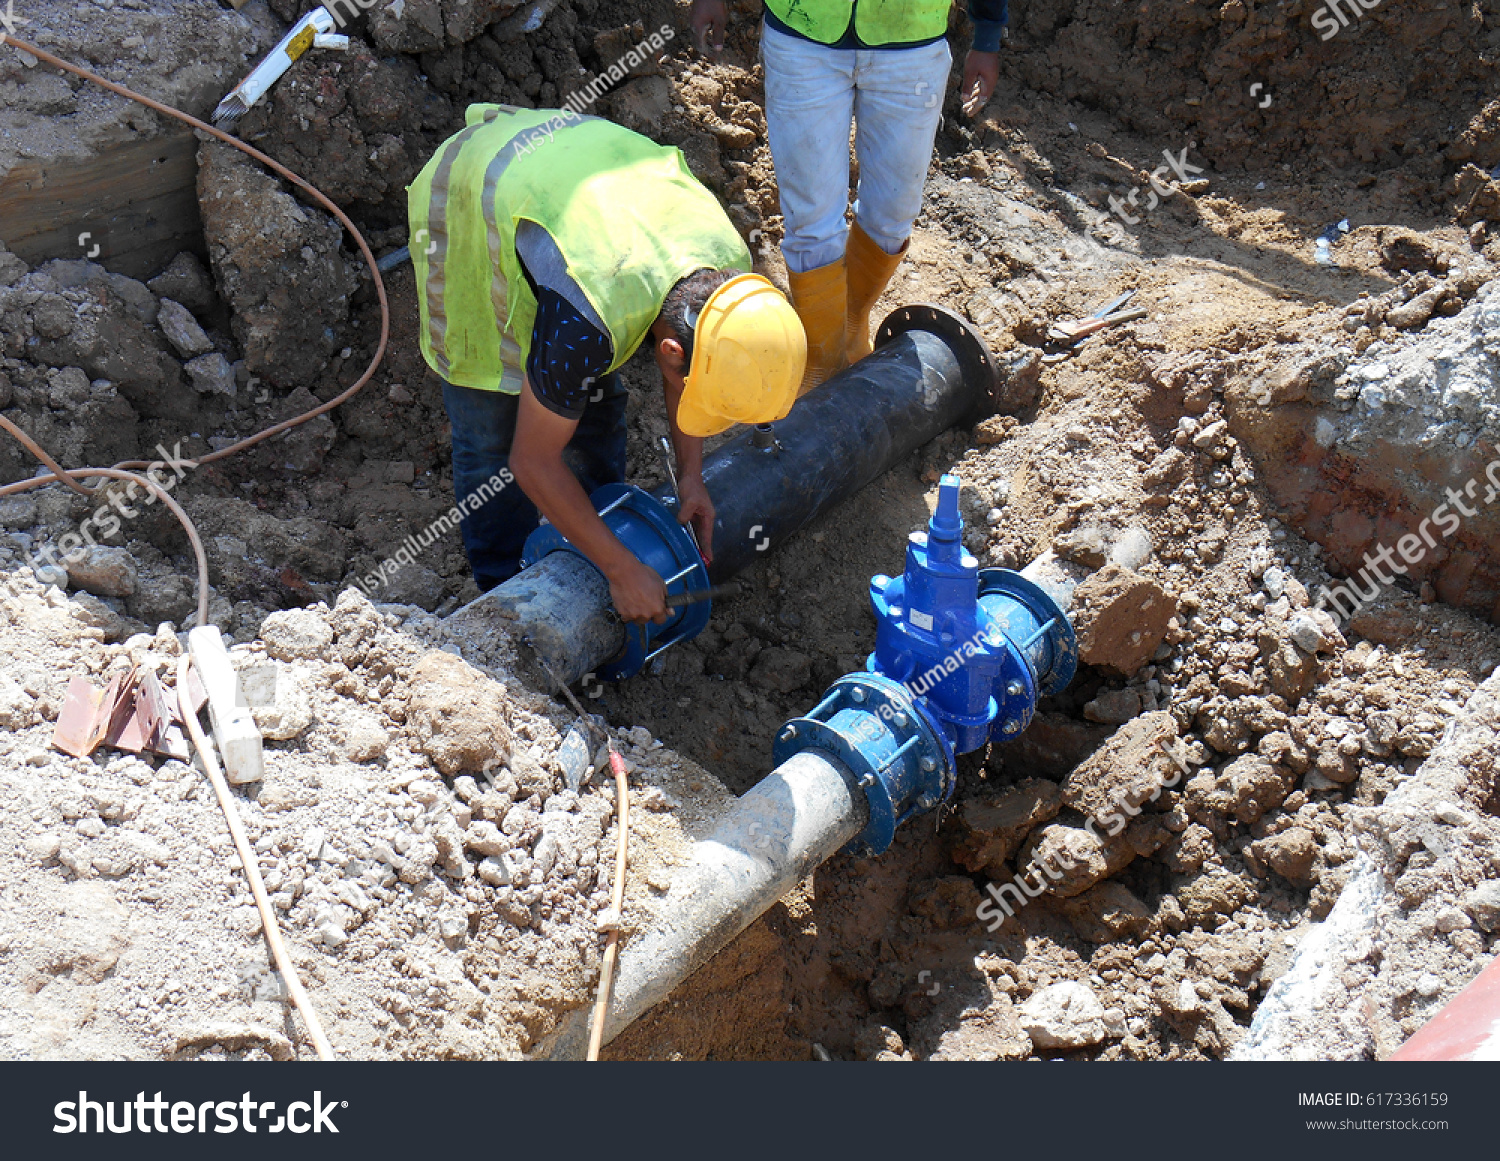 Construction workers install underground utility services